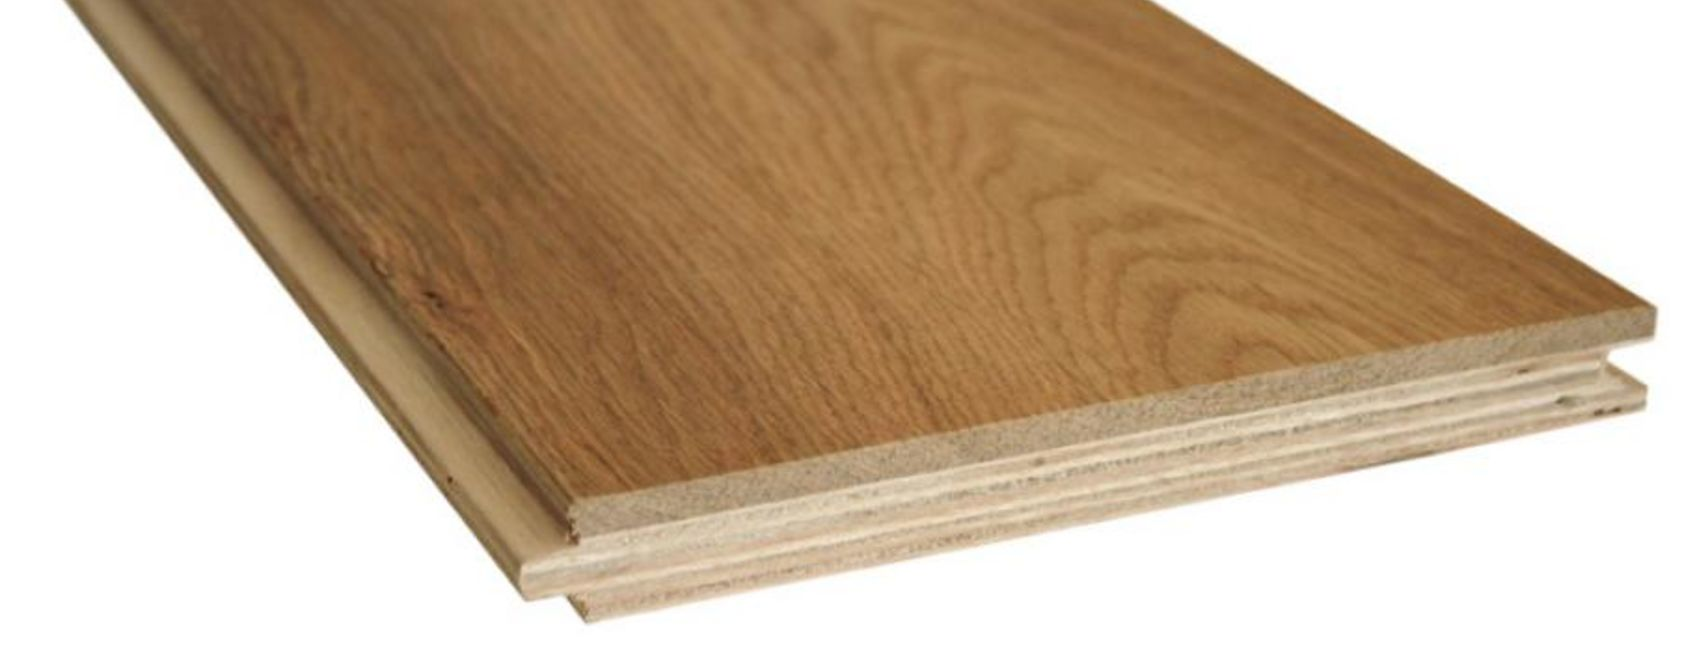 Why Choose Jfj Wood Flooring Because Quality And